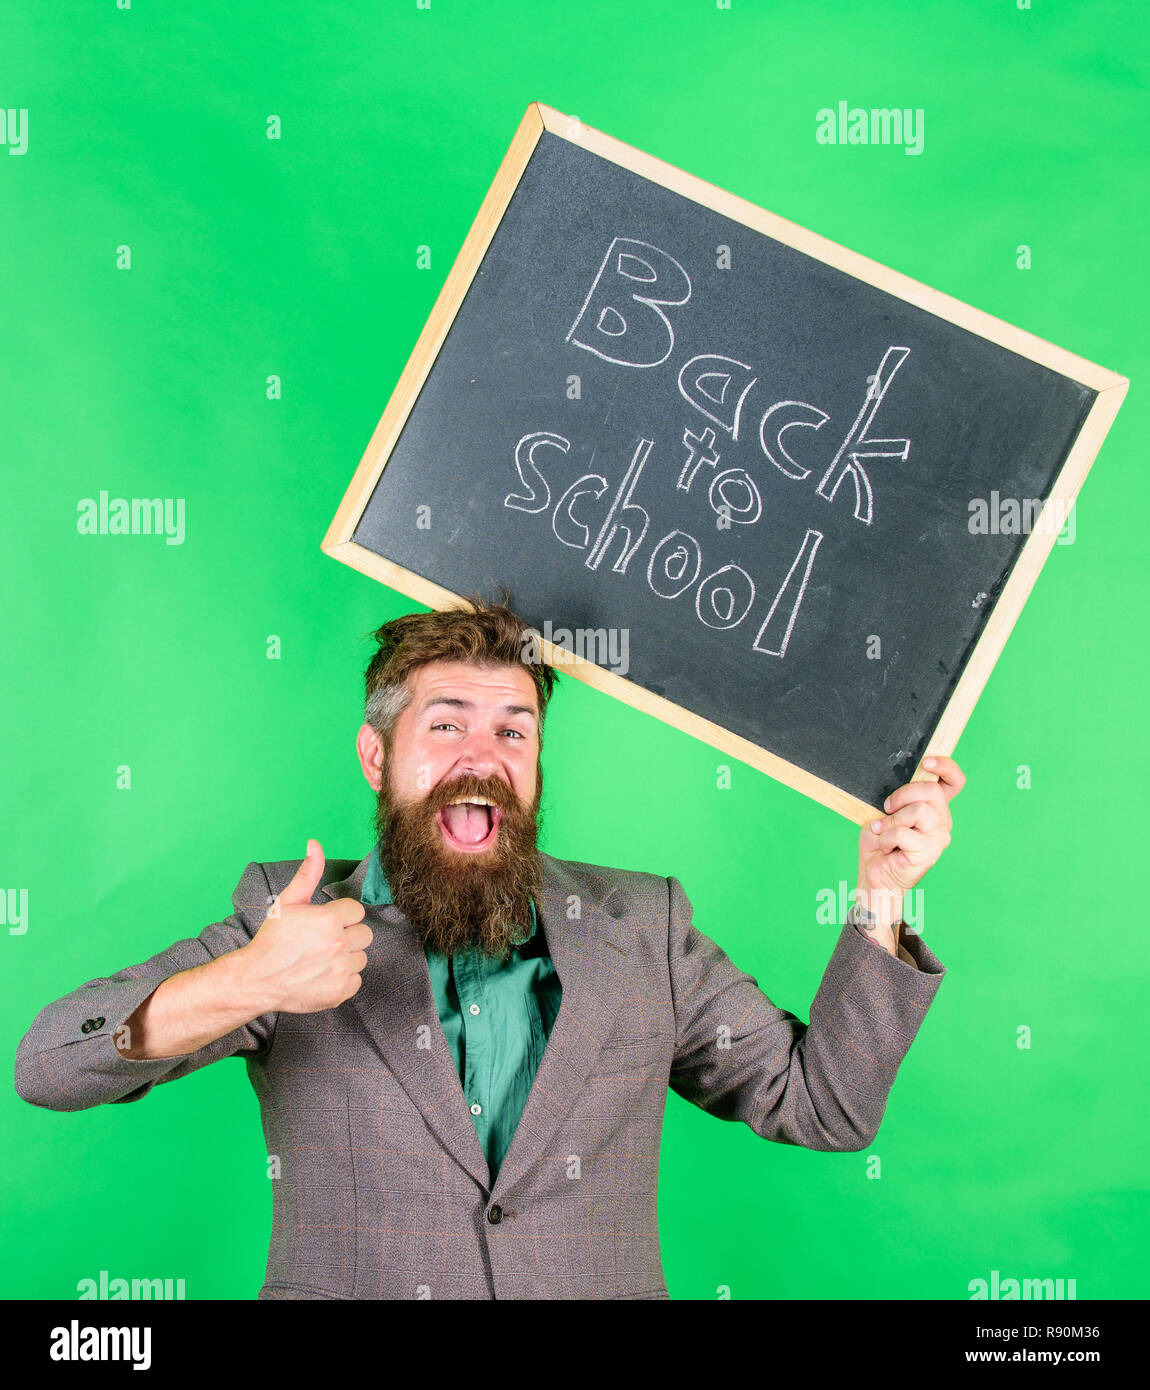 Special offer discount sale school season. Apply for sensational educational offer. Back to school special offer. Man bearded teacher holds blackboard back to school inscription on green background. - Stock Image